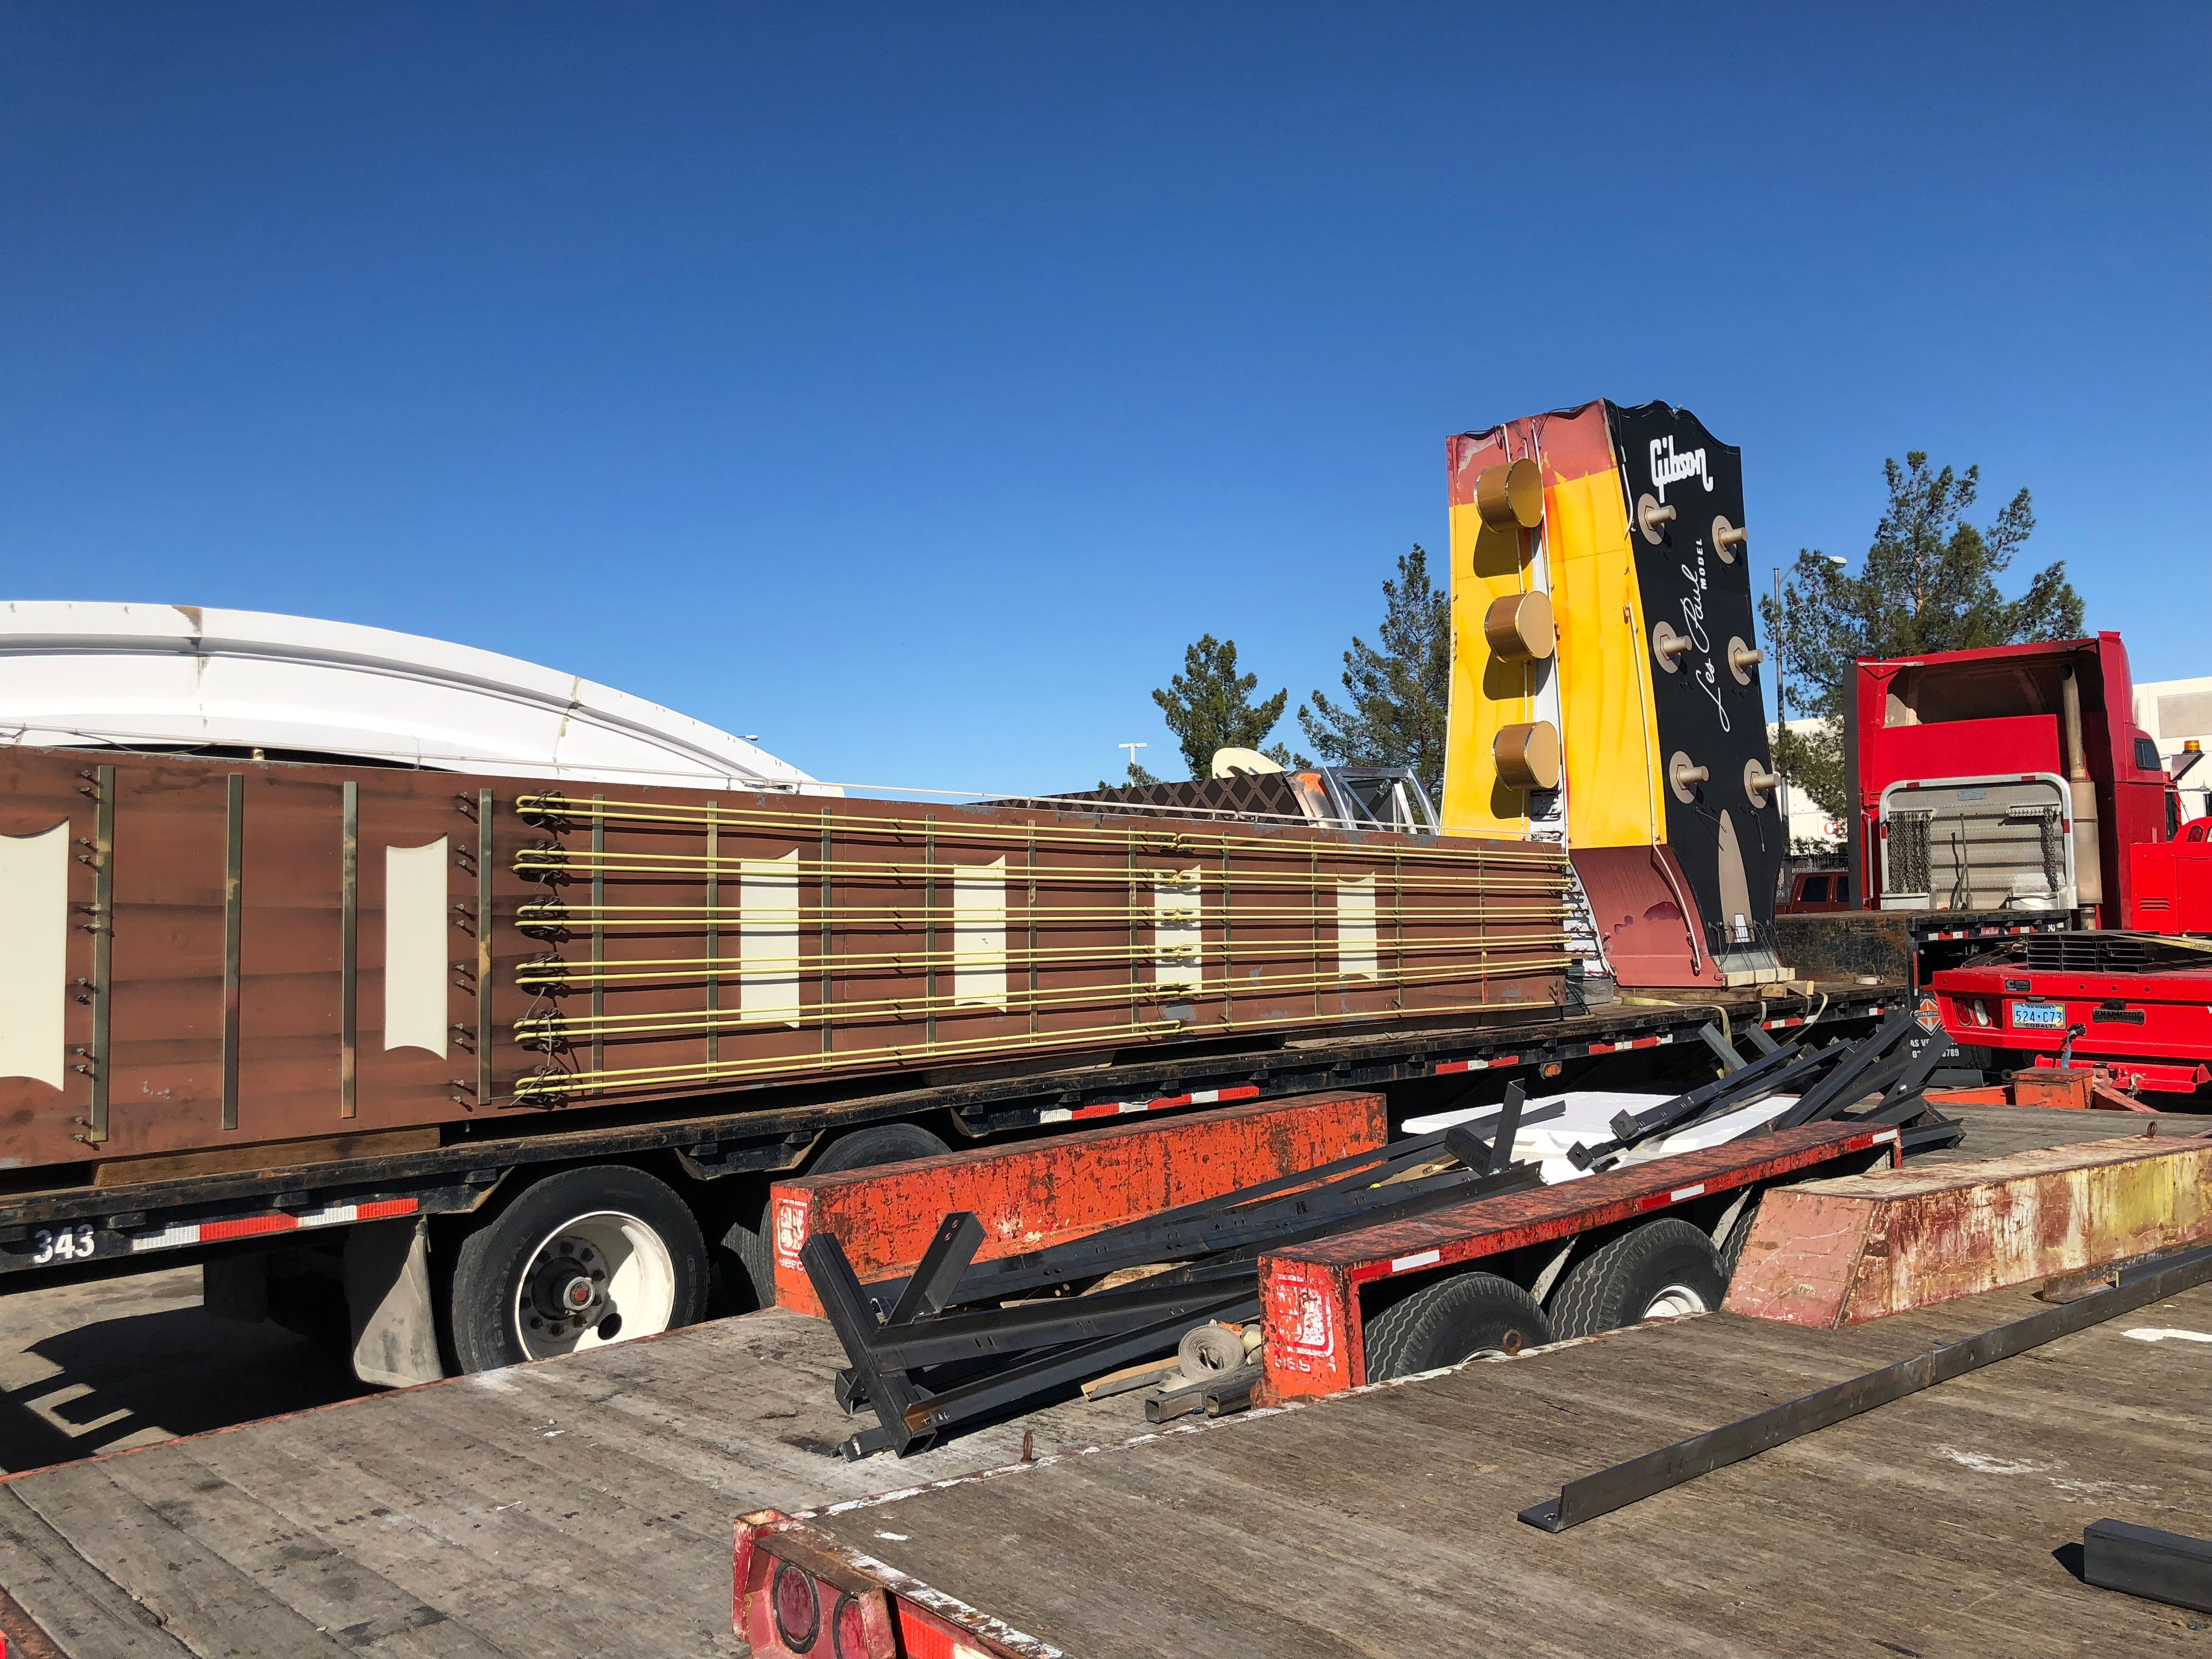 The iconic sign from the Hard Rock Cafe Las Vegas, which closed in 2016, will be on display at the Neon Museum in Las Vegas beginning in March 2019. The downtown Las Vegas museum has a $350,000 fundraiser to restore and maintain the sign.